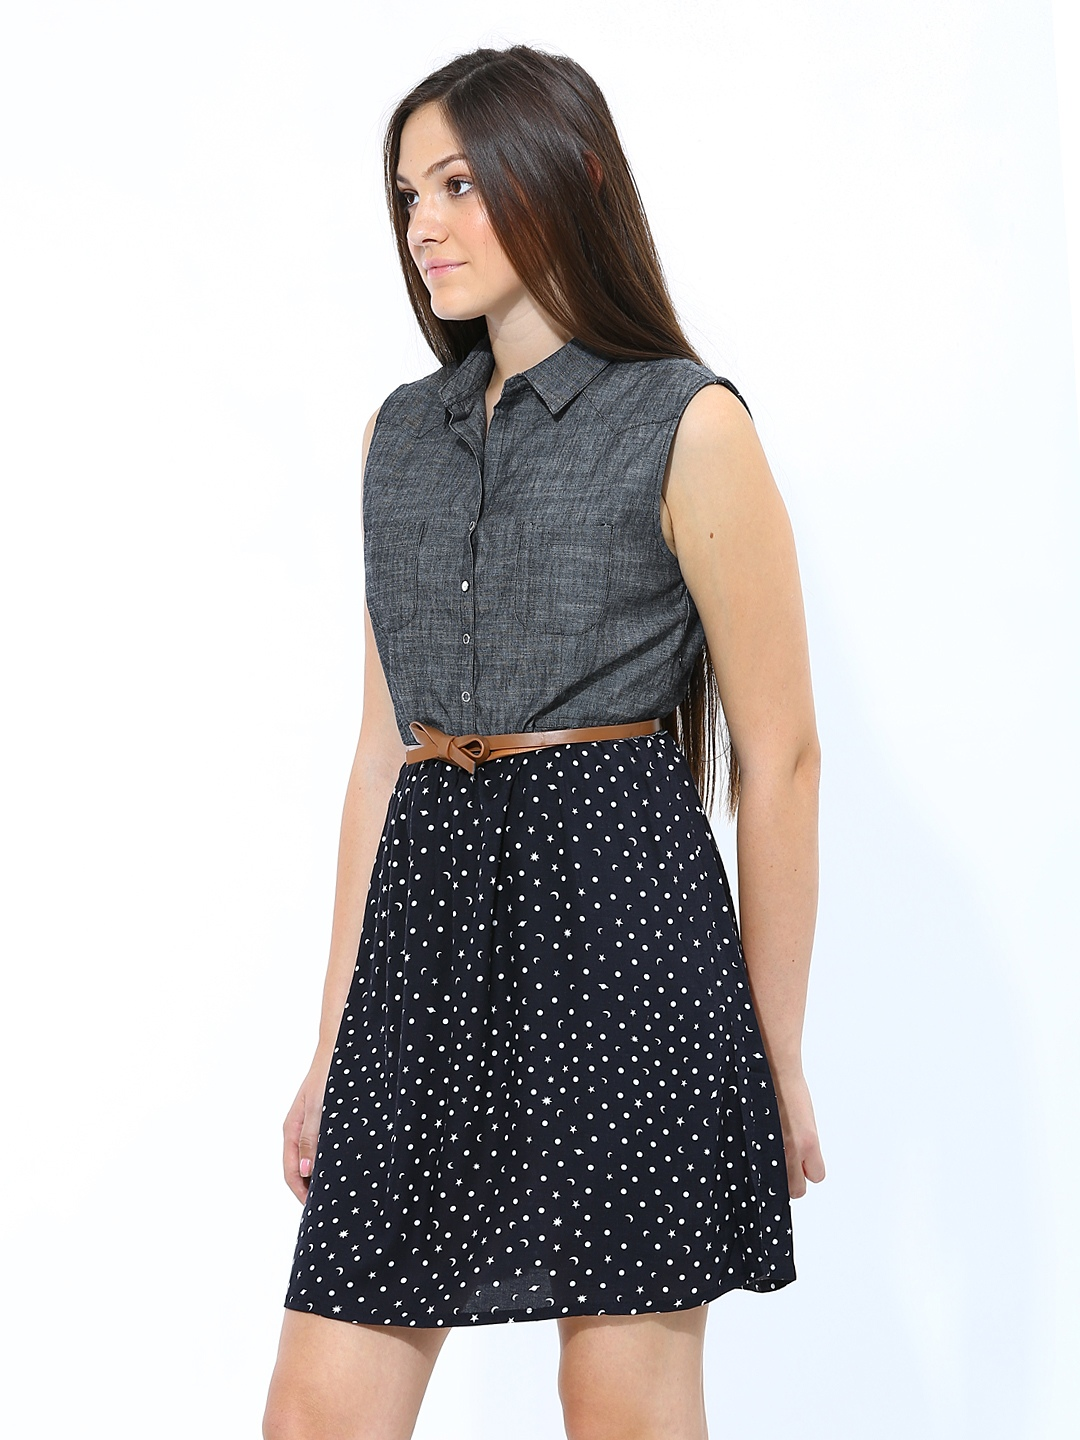 Myntra chemistry charcoal grey black shirt dress 418069 for Dark grey shirt dress